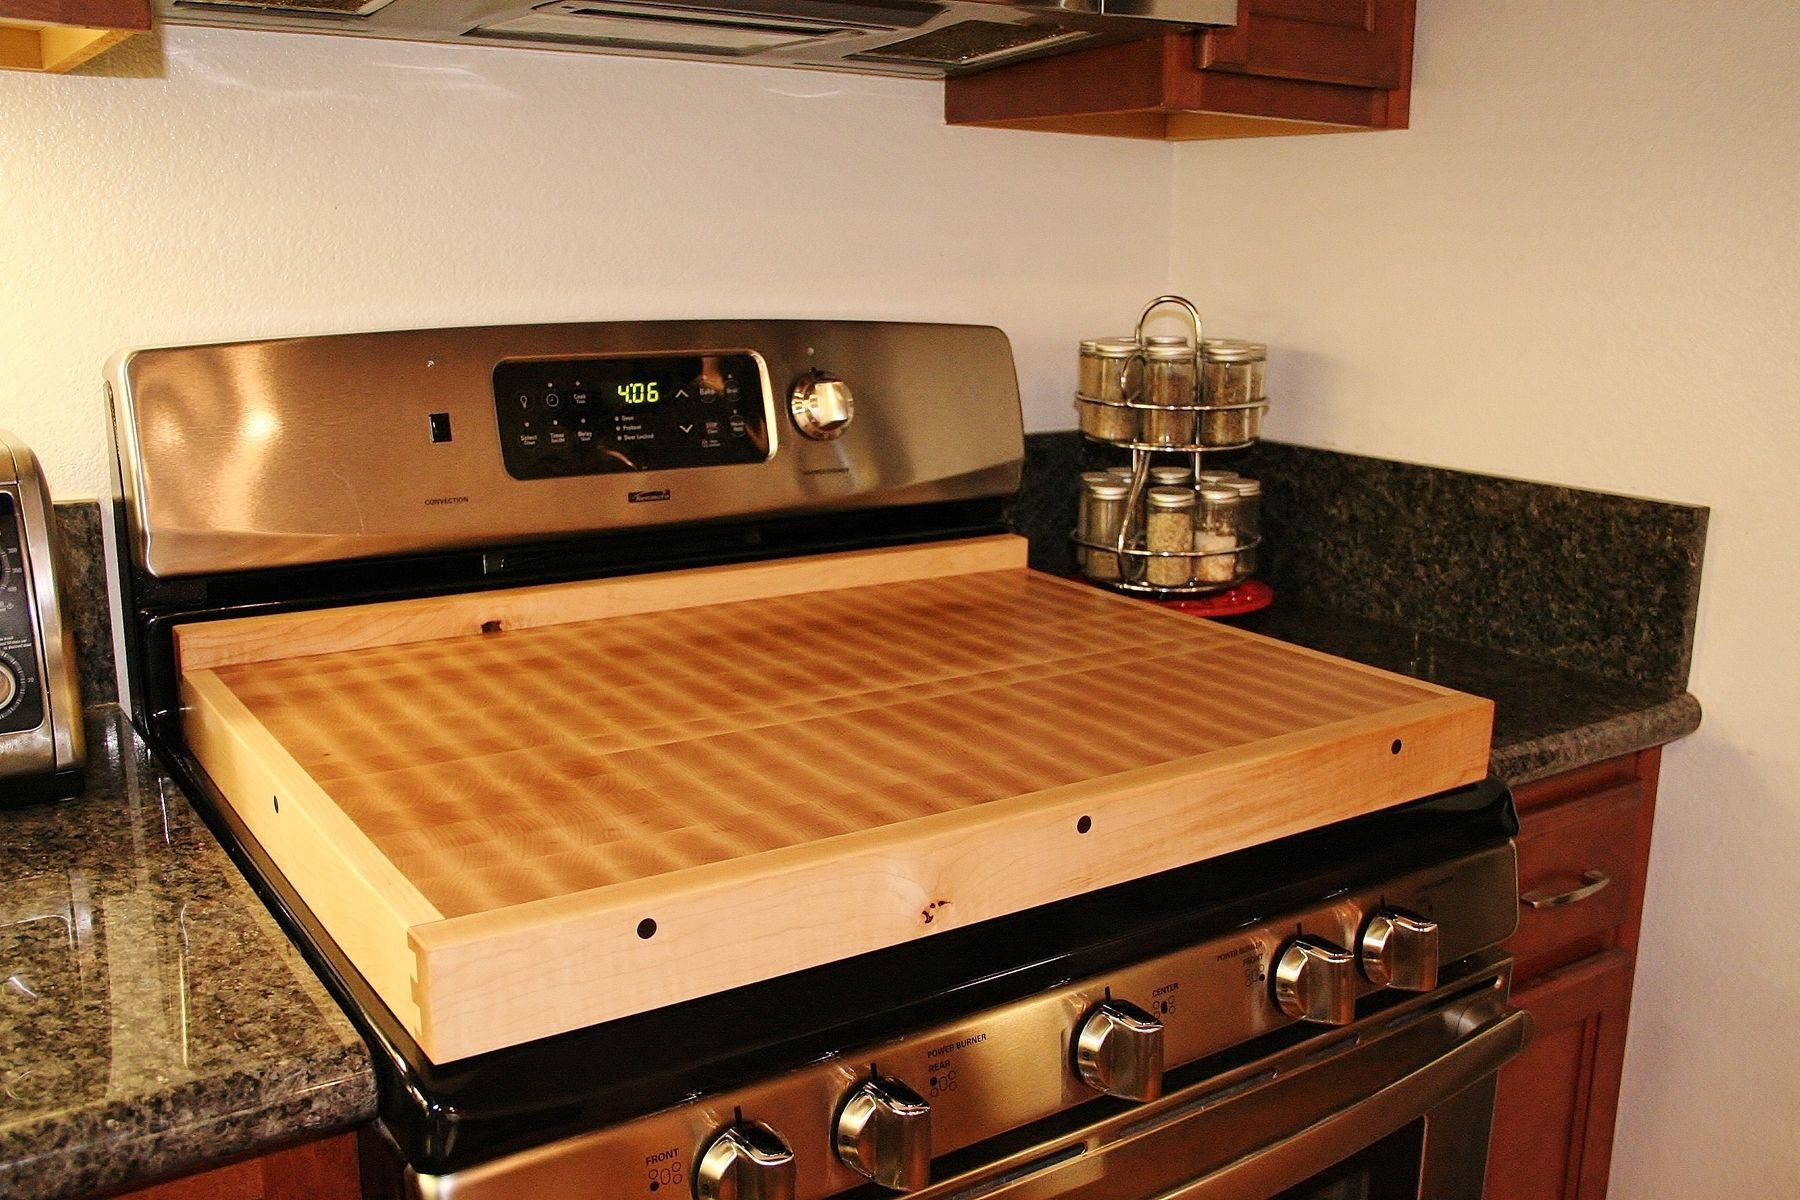 Cover The Stovetop Eyes Butcher Block Countertops Countertops Stove Cover